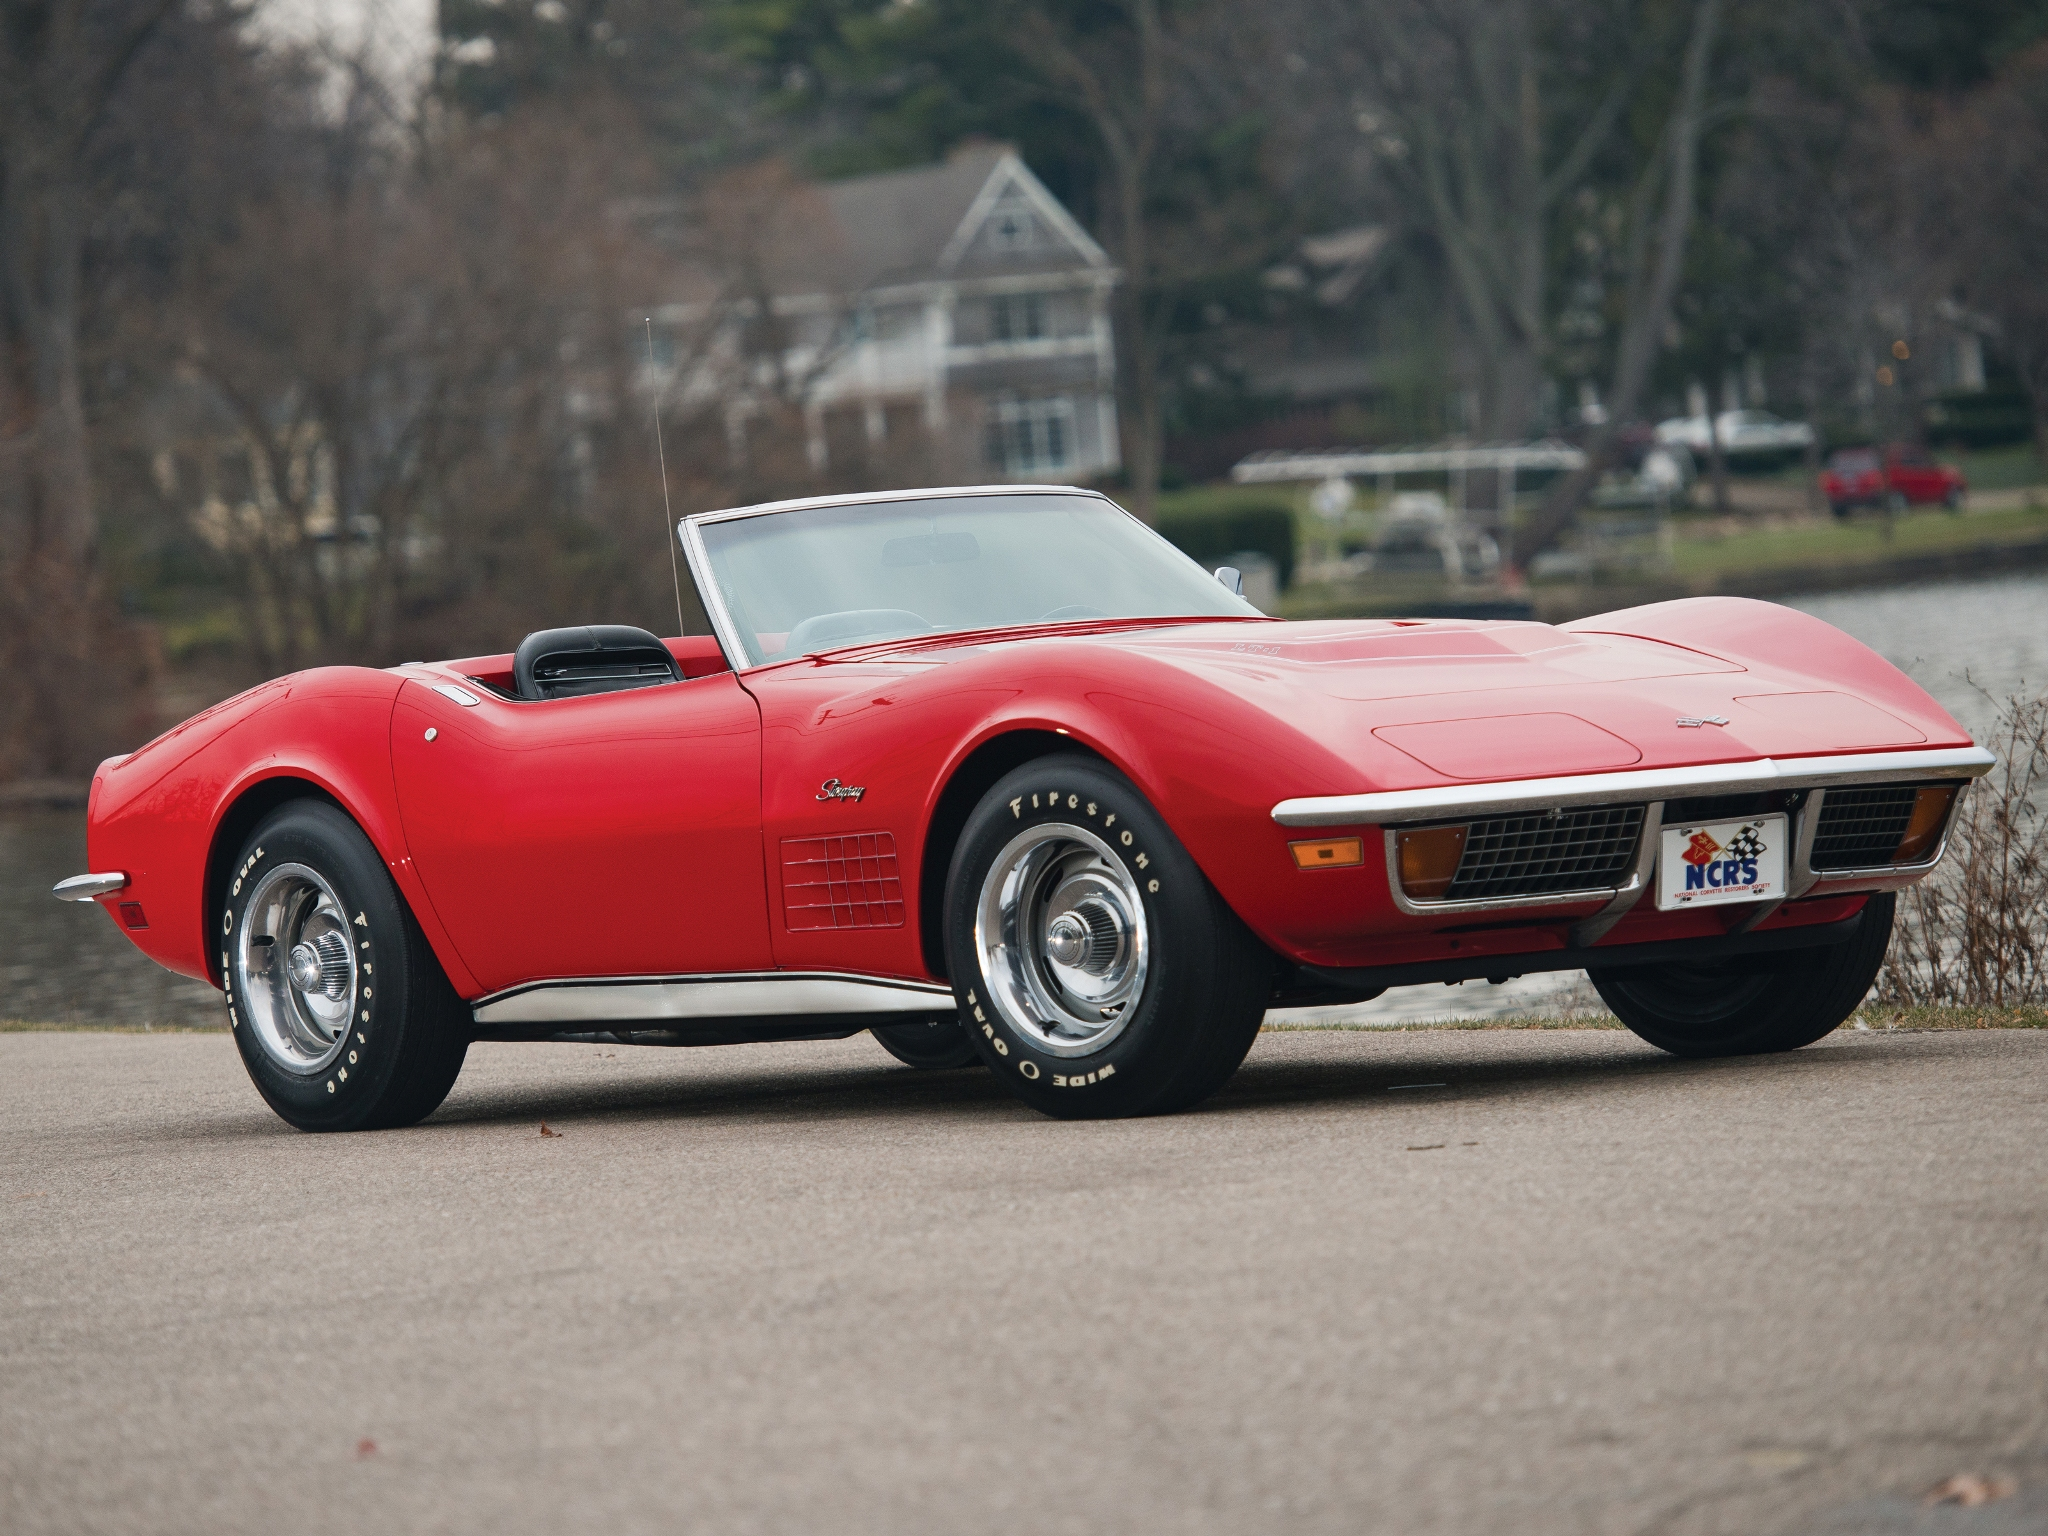 1972 corvette stingray lt1 350 255hp convertible c3 muscle classic. Cars Review. Best American Auto & Cars Review